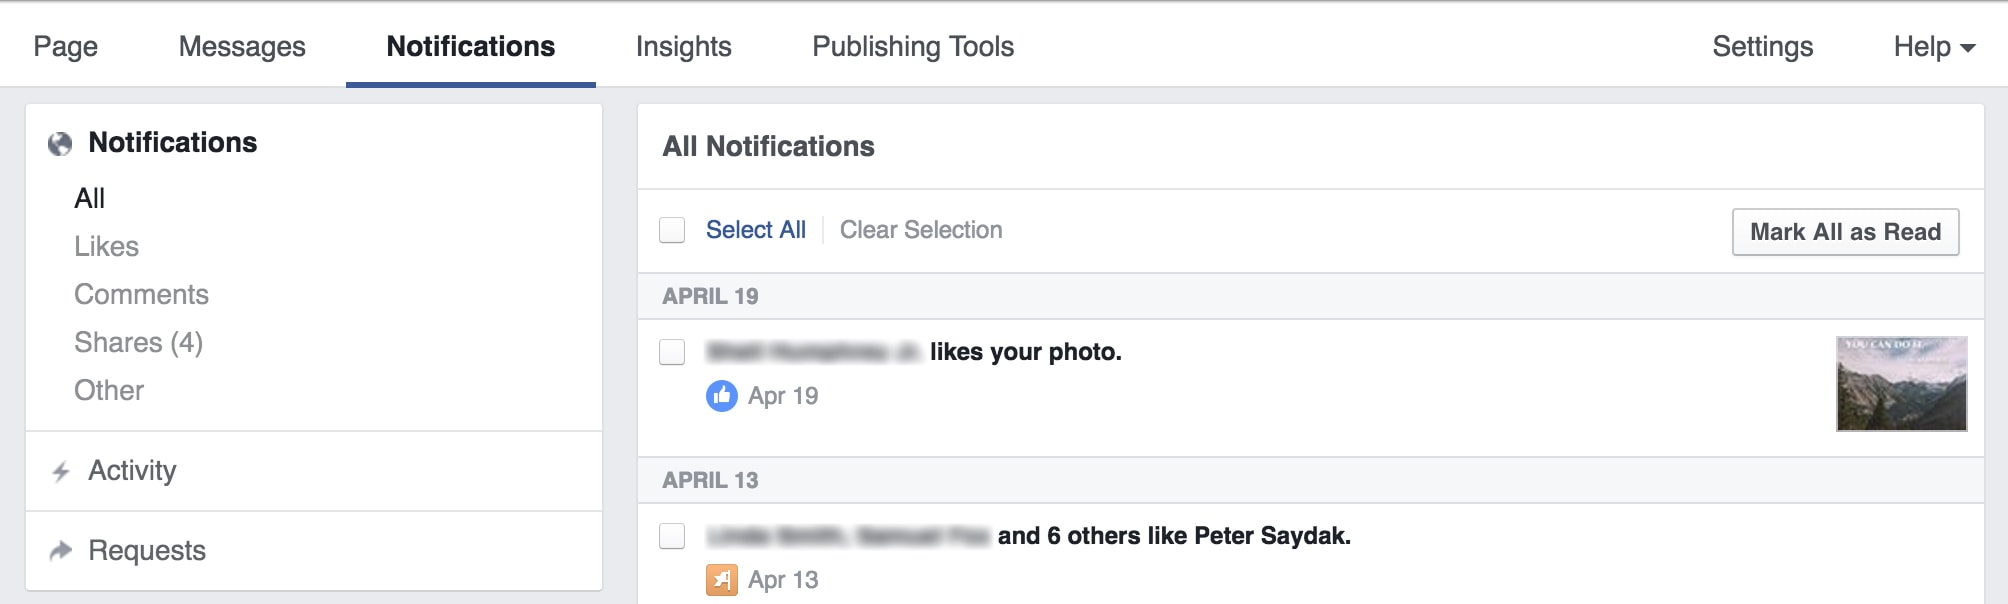 Page Notifications